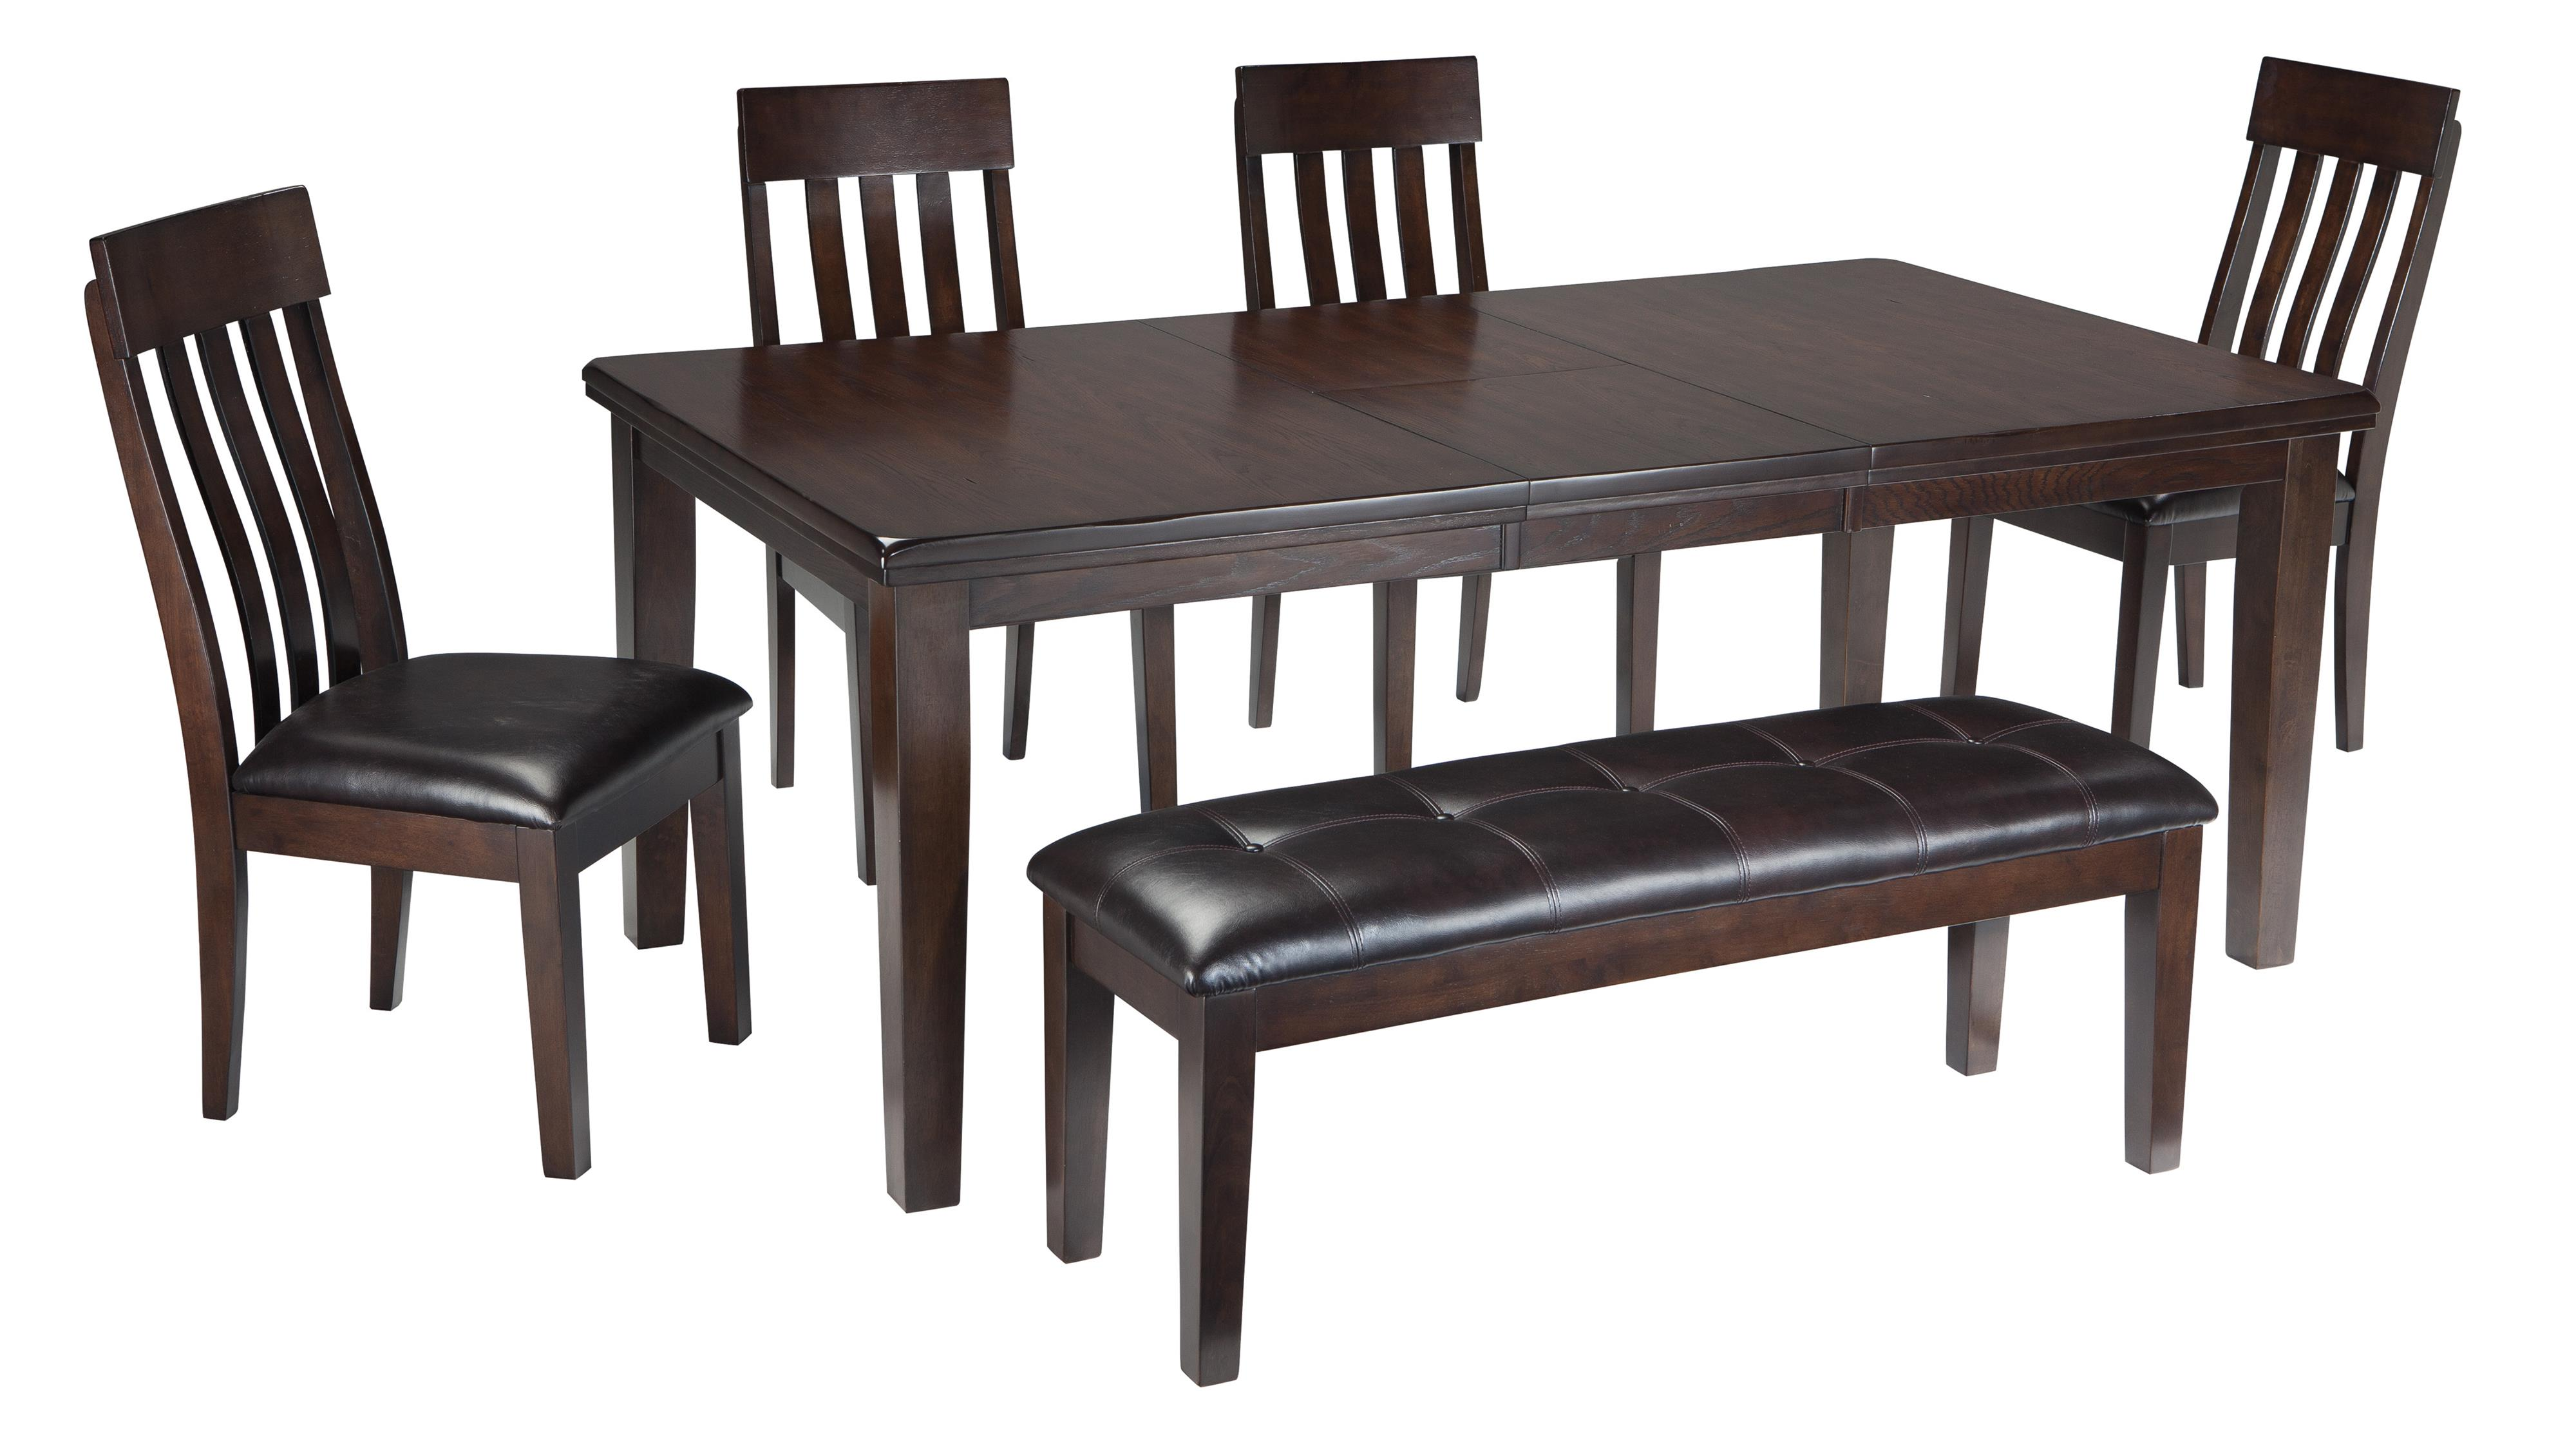 Ashley Chairs Haddigan 6 Piece Rectangular Dining Room Table W 4 Upholstered Dining Side Chairs And Upholstered Dining Bench Set By Signature Design By Ashley At